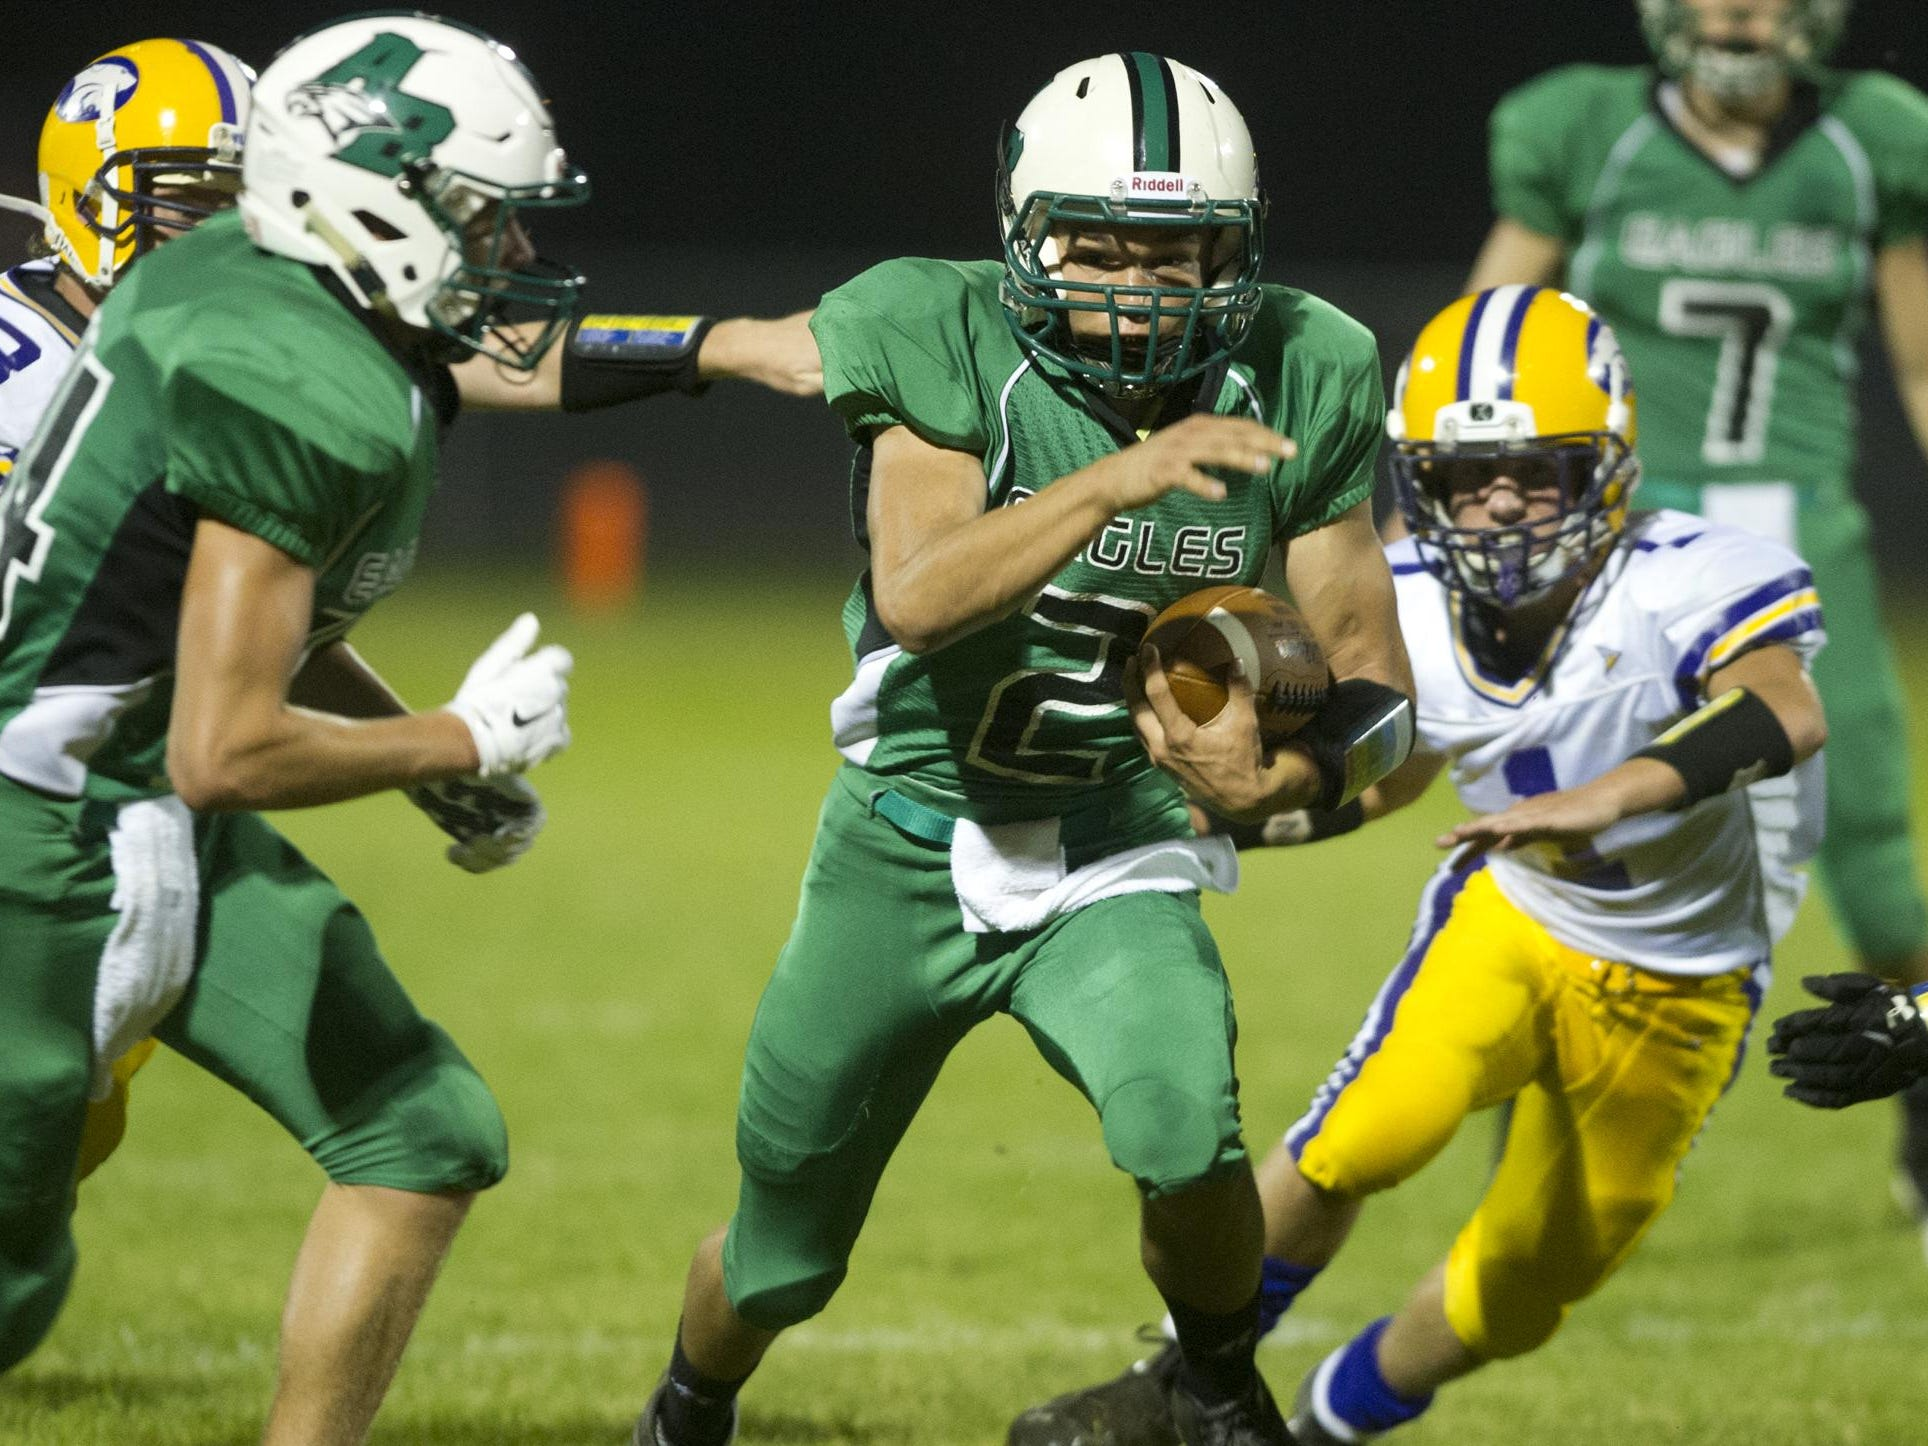 Almond-Bancroft's Derek Baumgartner (2) runs with the ball during the Central Wisconsin Conference football game against Wild Rose in Almond, Friday, Sept. 25, 2015.